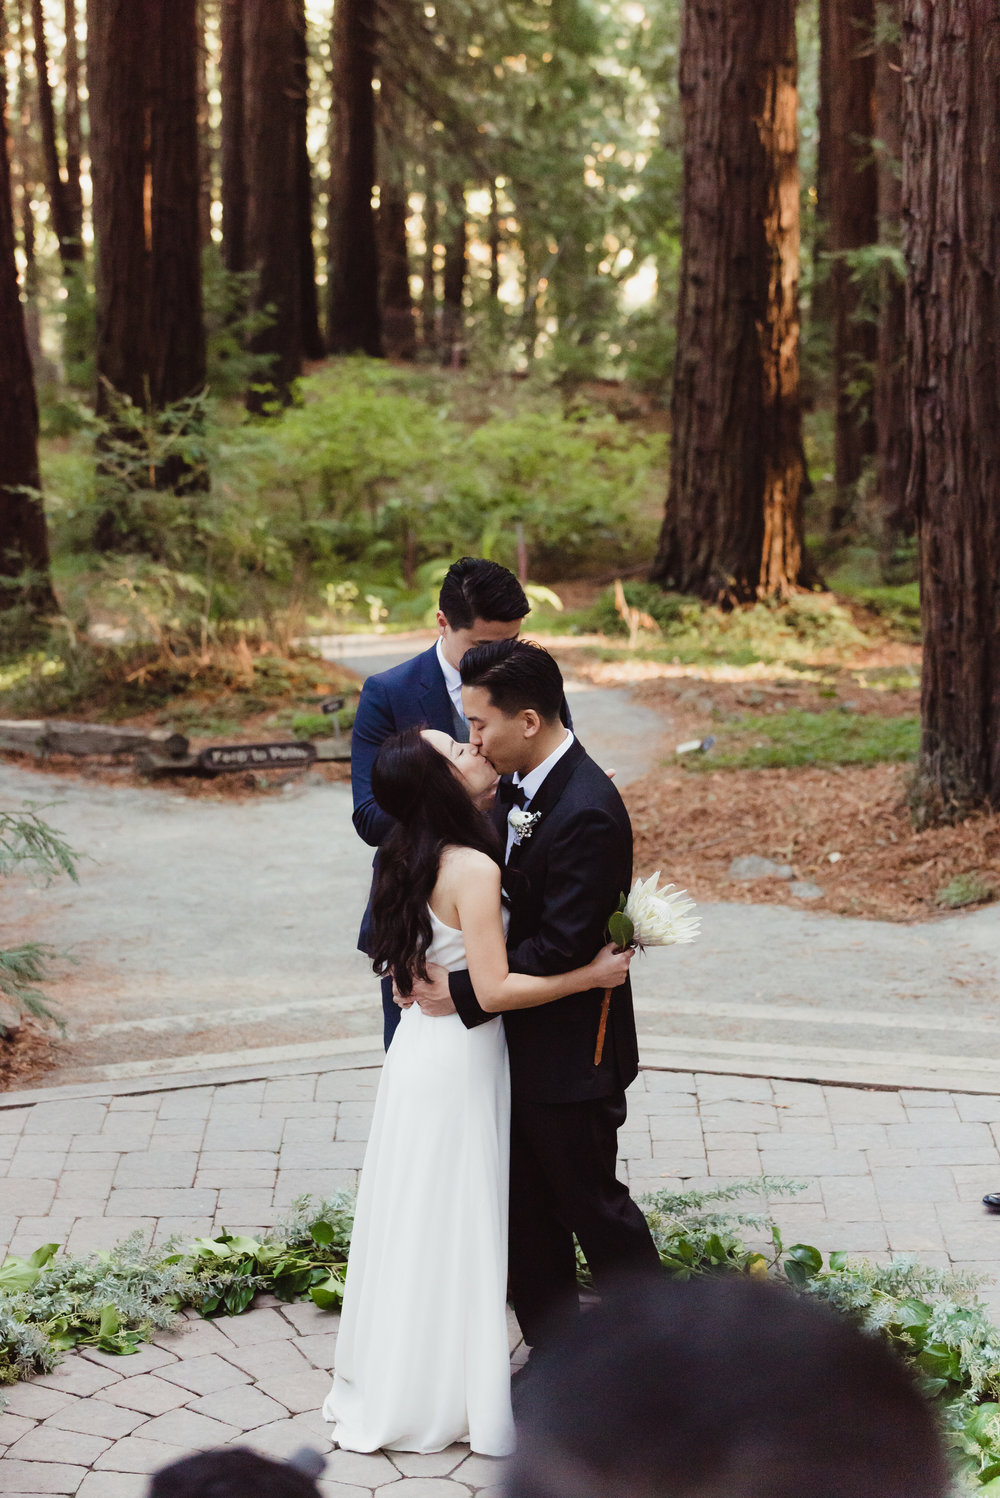 30-mather-redwood-grove-uc-botanical-garden-wedding-vivianchen-194.jpg